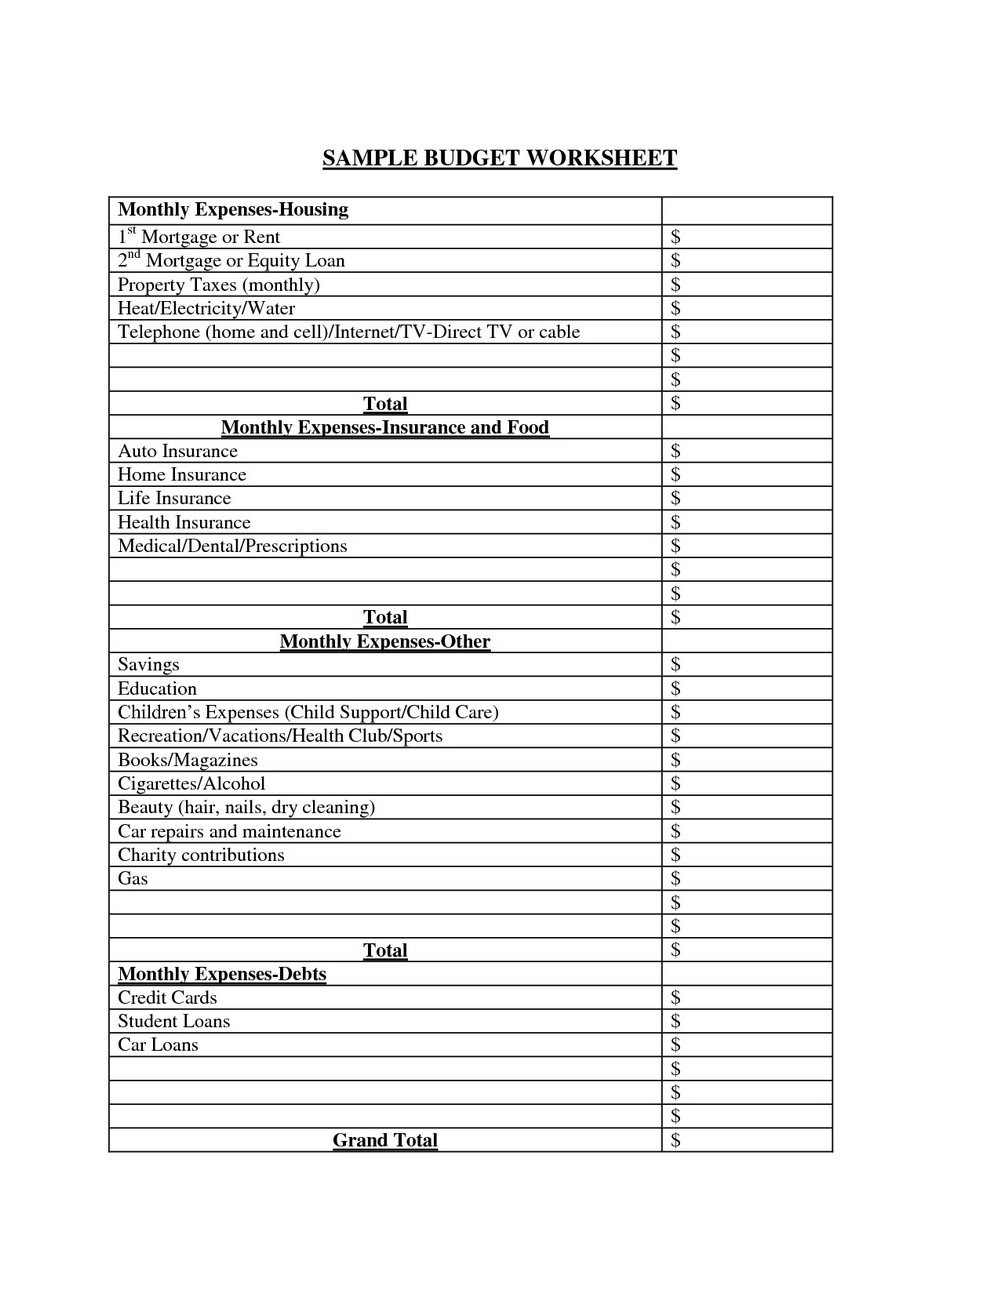 Household Budget Forms Dave Ramsey